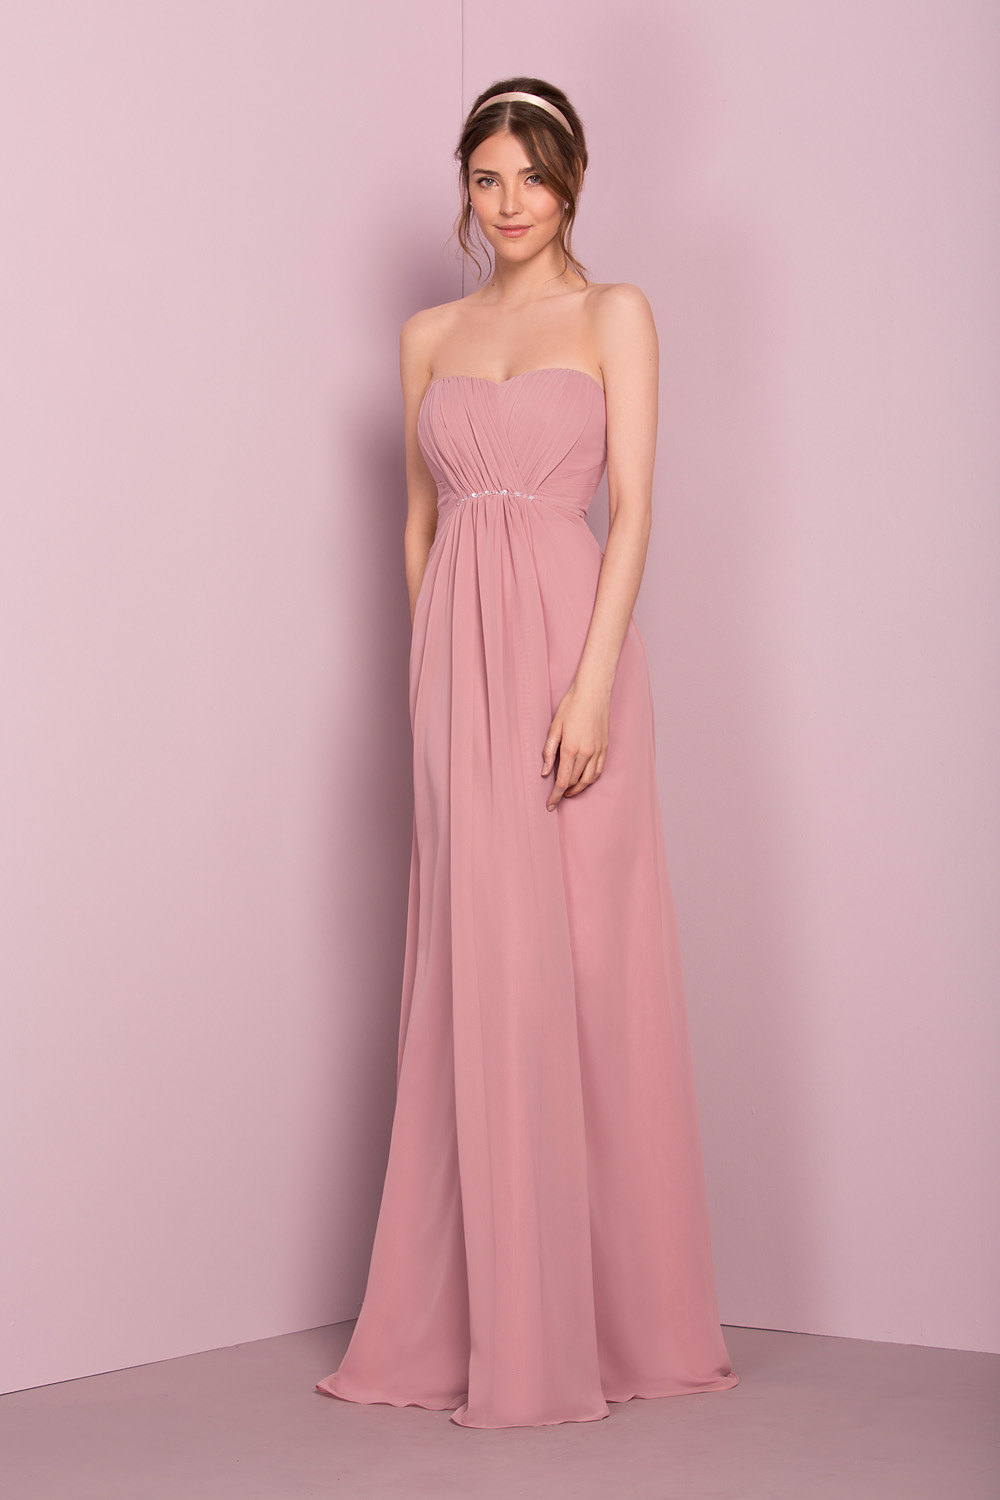 STYLE 18605 : EMPIRE LINE DRESS